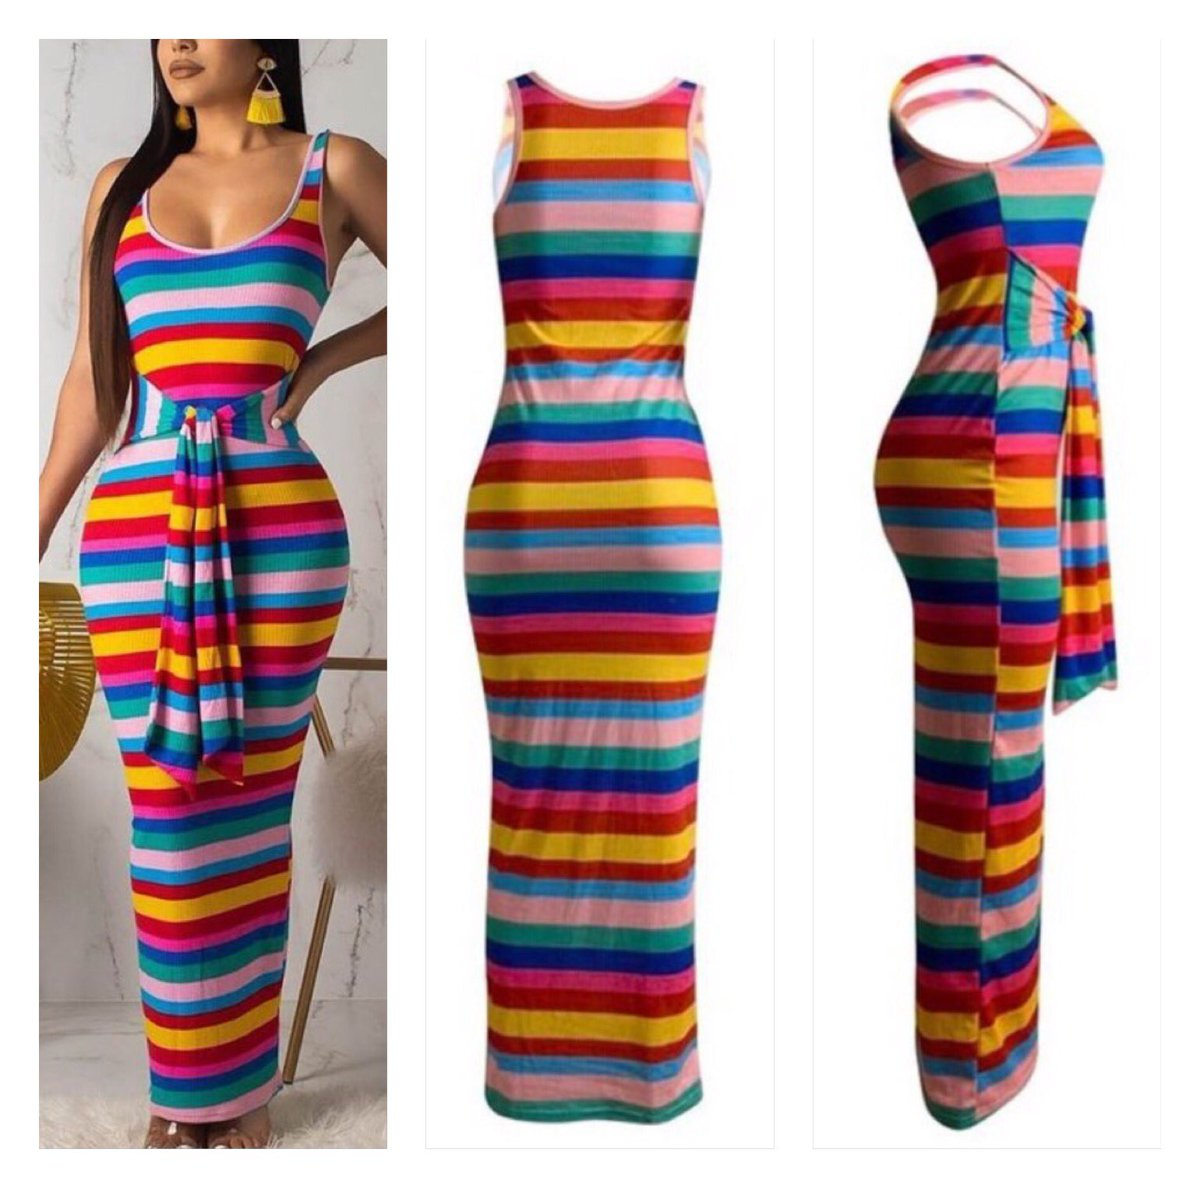 Fruit Stripe Maxi  add some cute sandals. 🦋🦋🦋🦋🦋🦋🦋🦋🦋🦋🦋🦋🦋🦋🦋🦋🦋🦋🦋🦋🦋🦋🦋🦋🦋🦋🦋🦋🦋🦋🦋🦋🦋🦋🦋🦋🦋🦋🦋🦋🦋🦋🦋🦋🦋🦋#cute #fashionista #onlineboutique #fashionstyle #shoponline #smallbusiness #shoponline #spring #weekendvibes #summer #fine